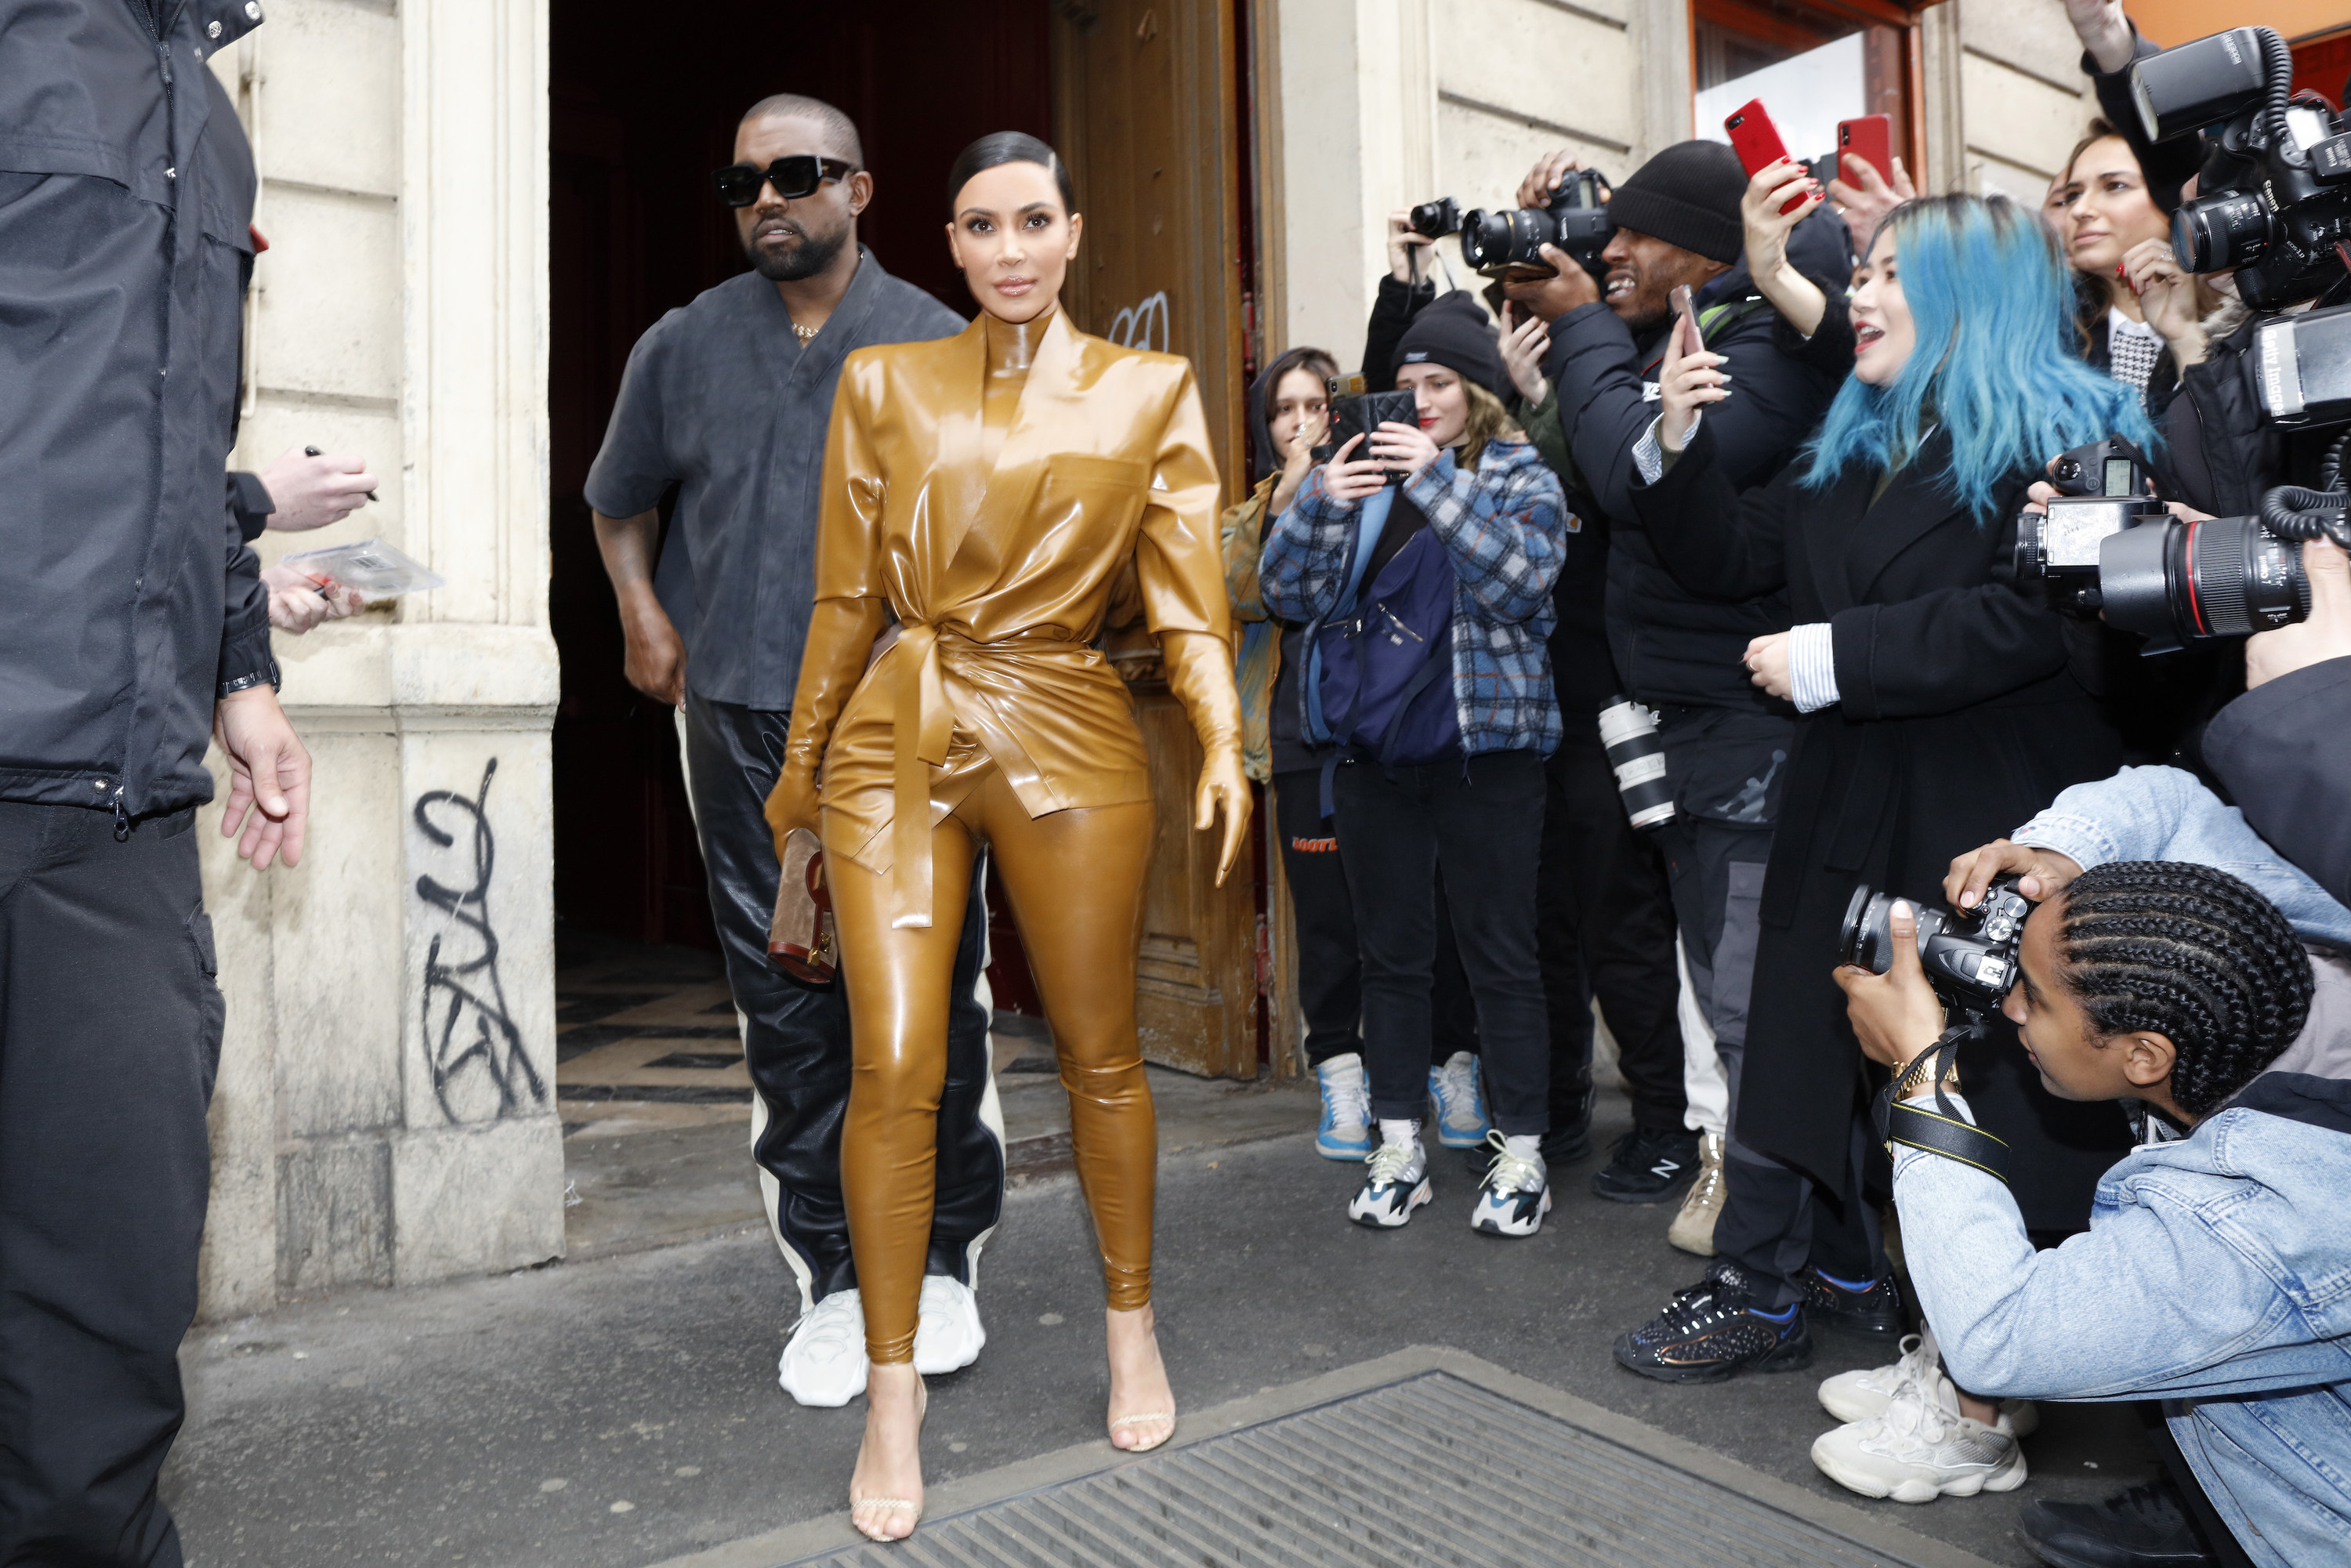 Kim Kardashian and Kanye West at the Theatre des Bouffes du Nord to attend Kanye West's Sunday Service on March 01, 2020 in Paris, France